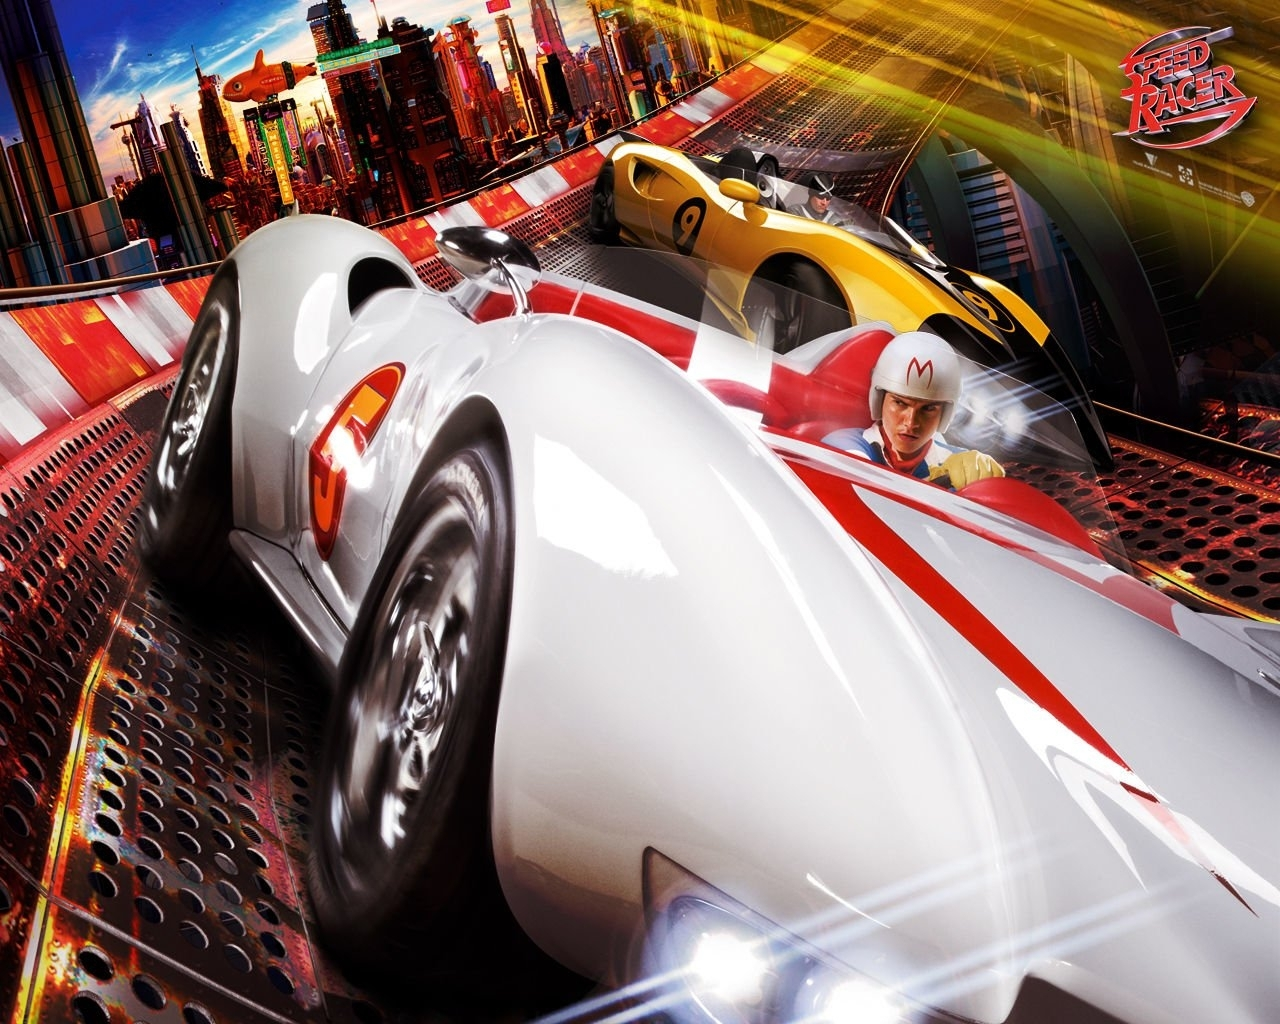 10 Latest Speed Racer Wall Paper FULL HD 1080p For PC Desktop